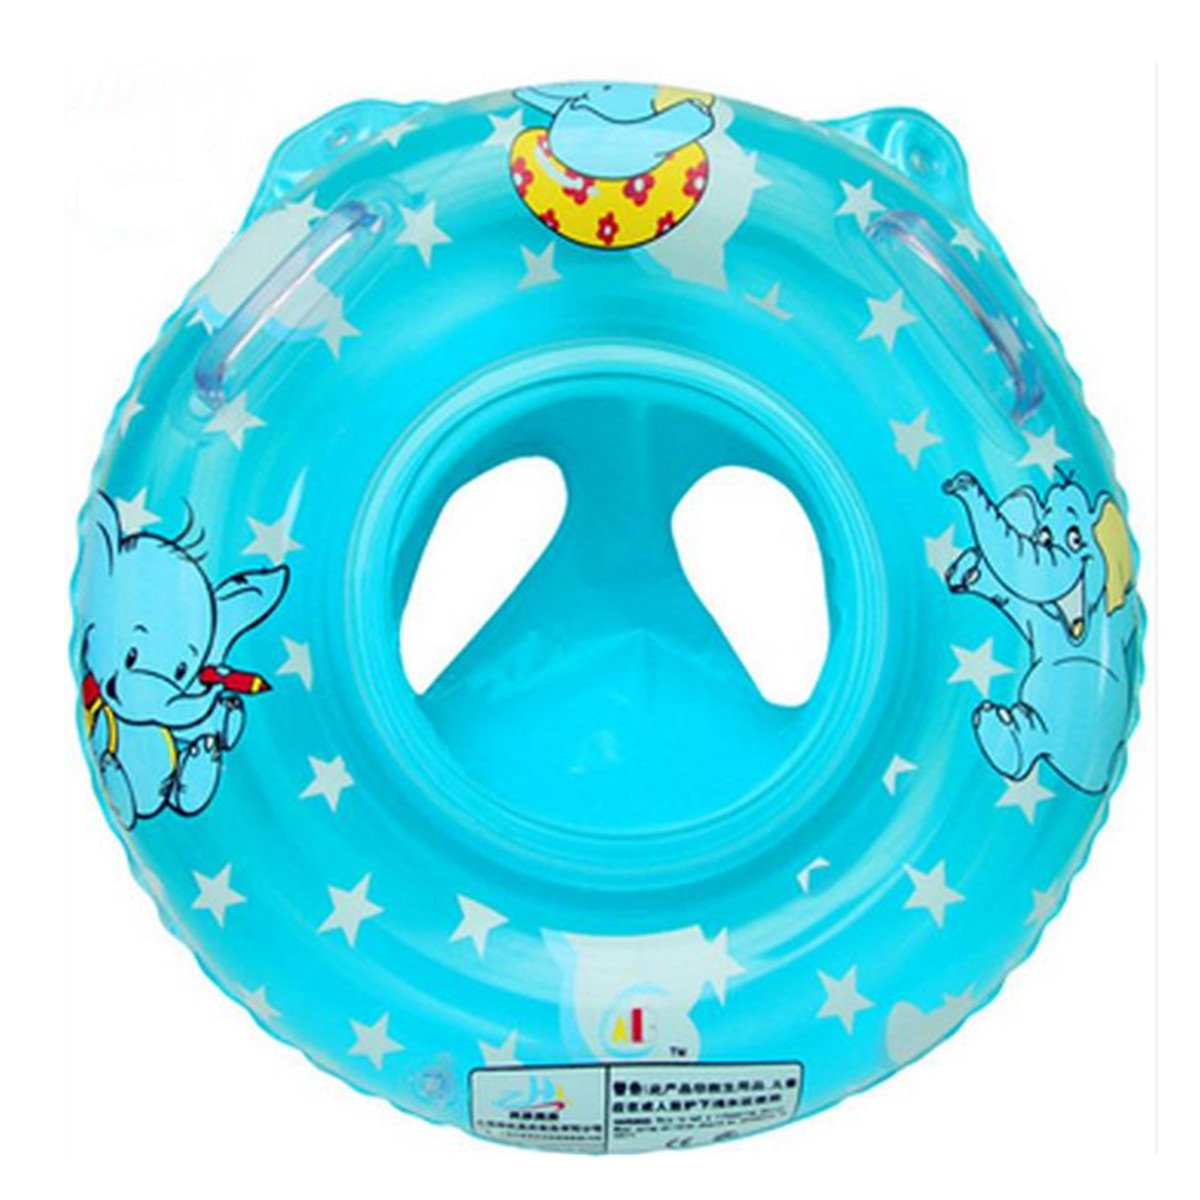 Inflatable Swimming Ring Seat Handles Toddler Baby Safety Aid Float Pool Toy Ebay